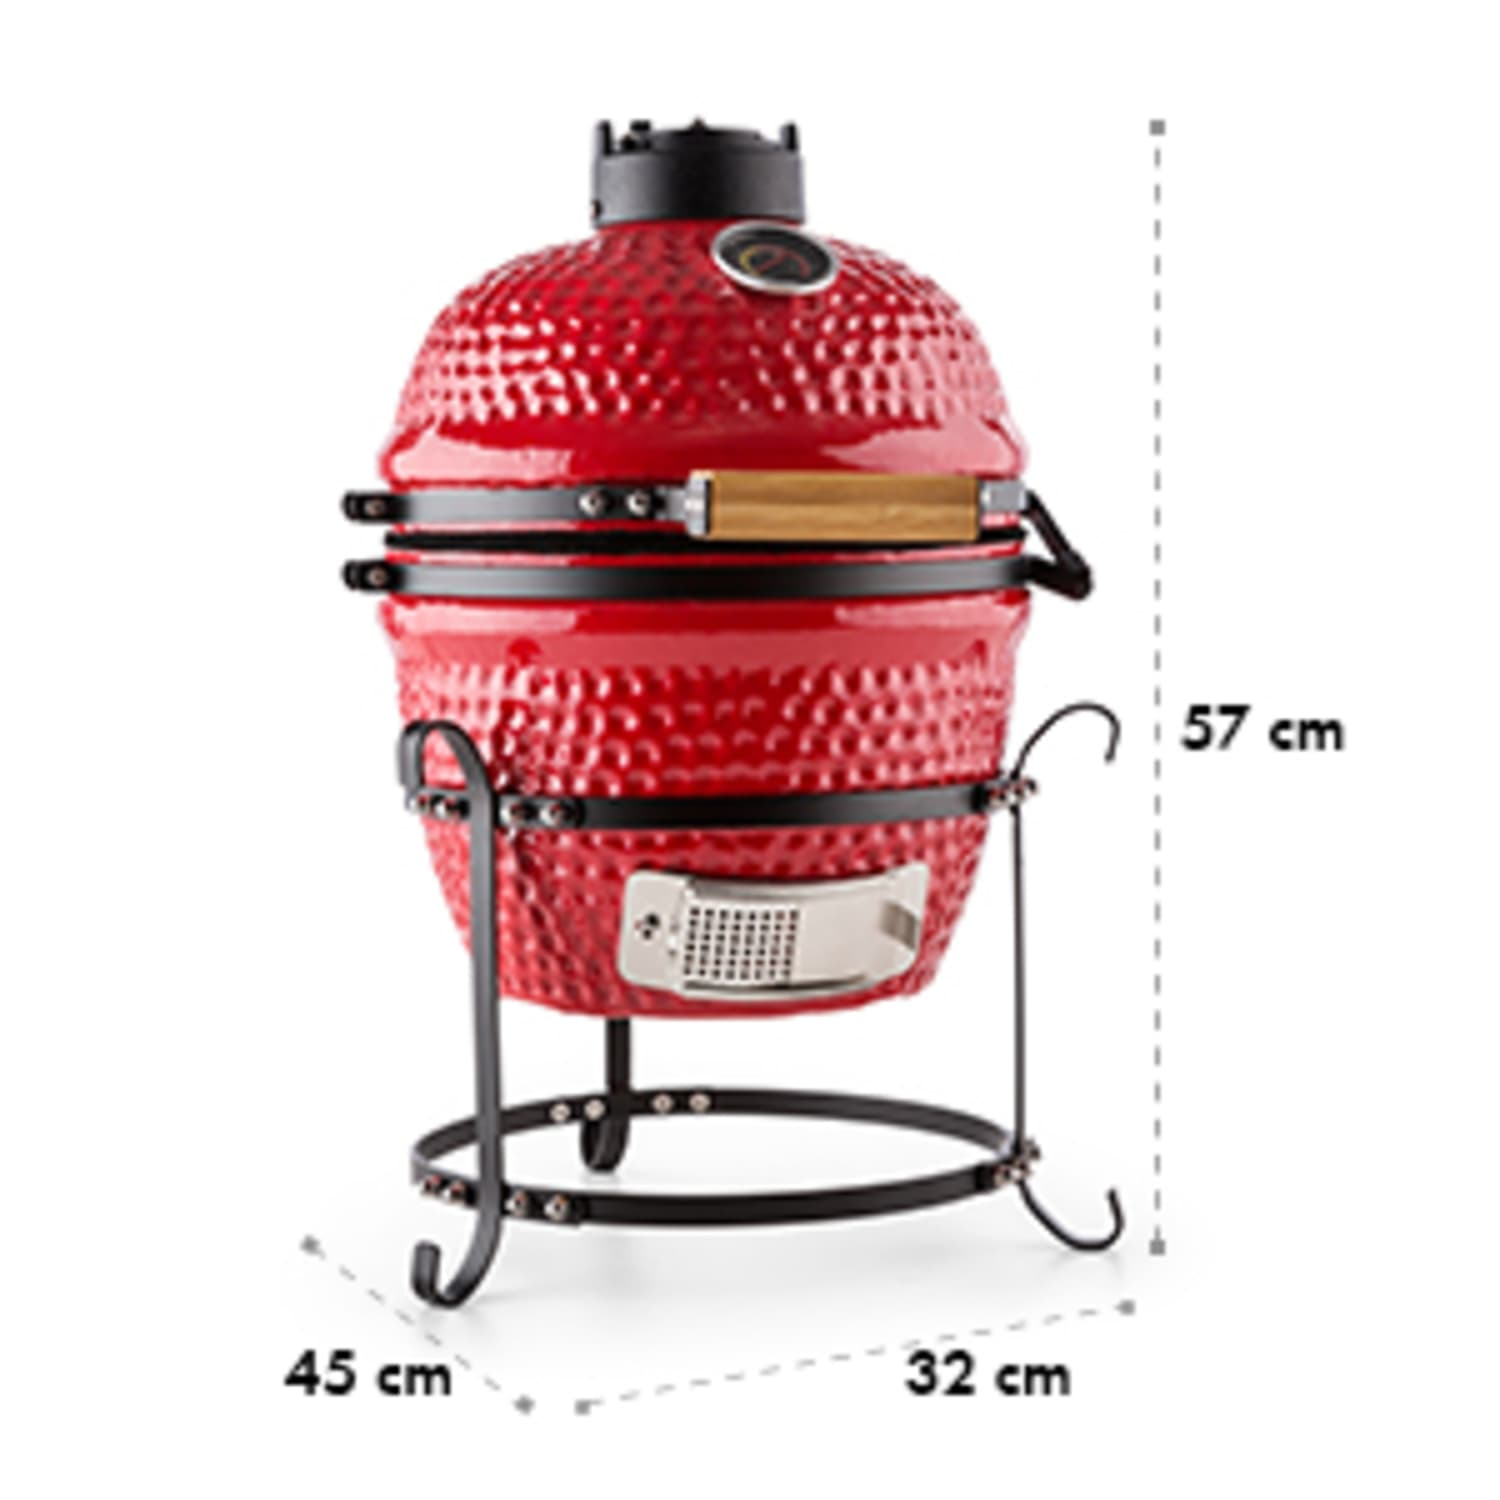 """Prince-sized Kamado Grill Ceramic Grill Oven 11"""" Smoker BBQ Slow Cooking red"""